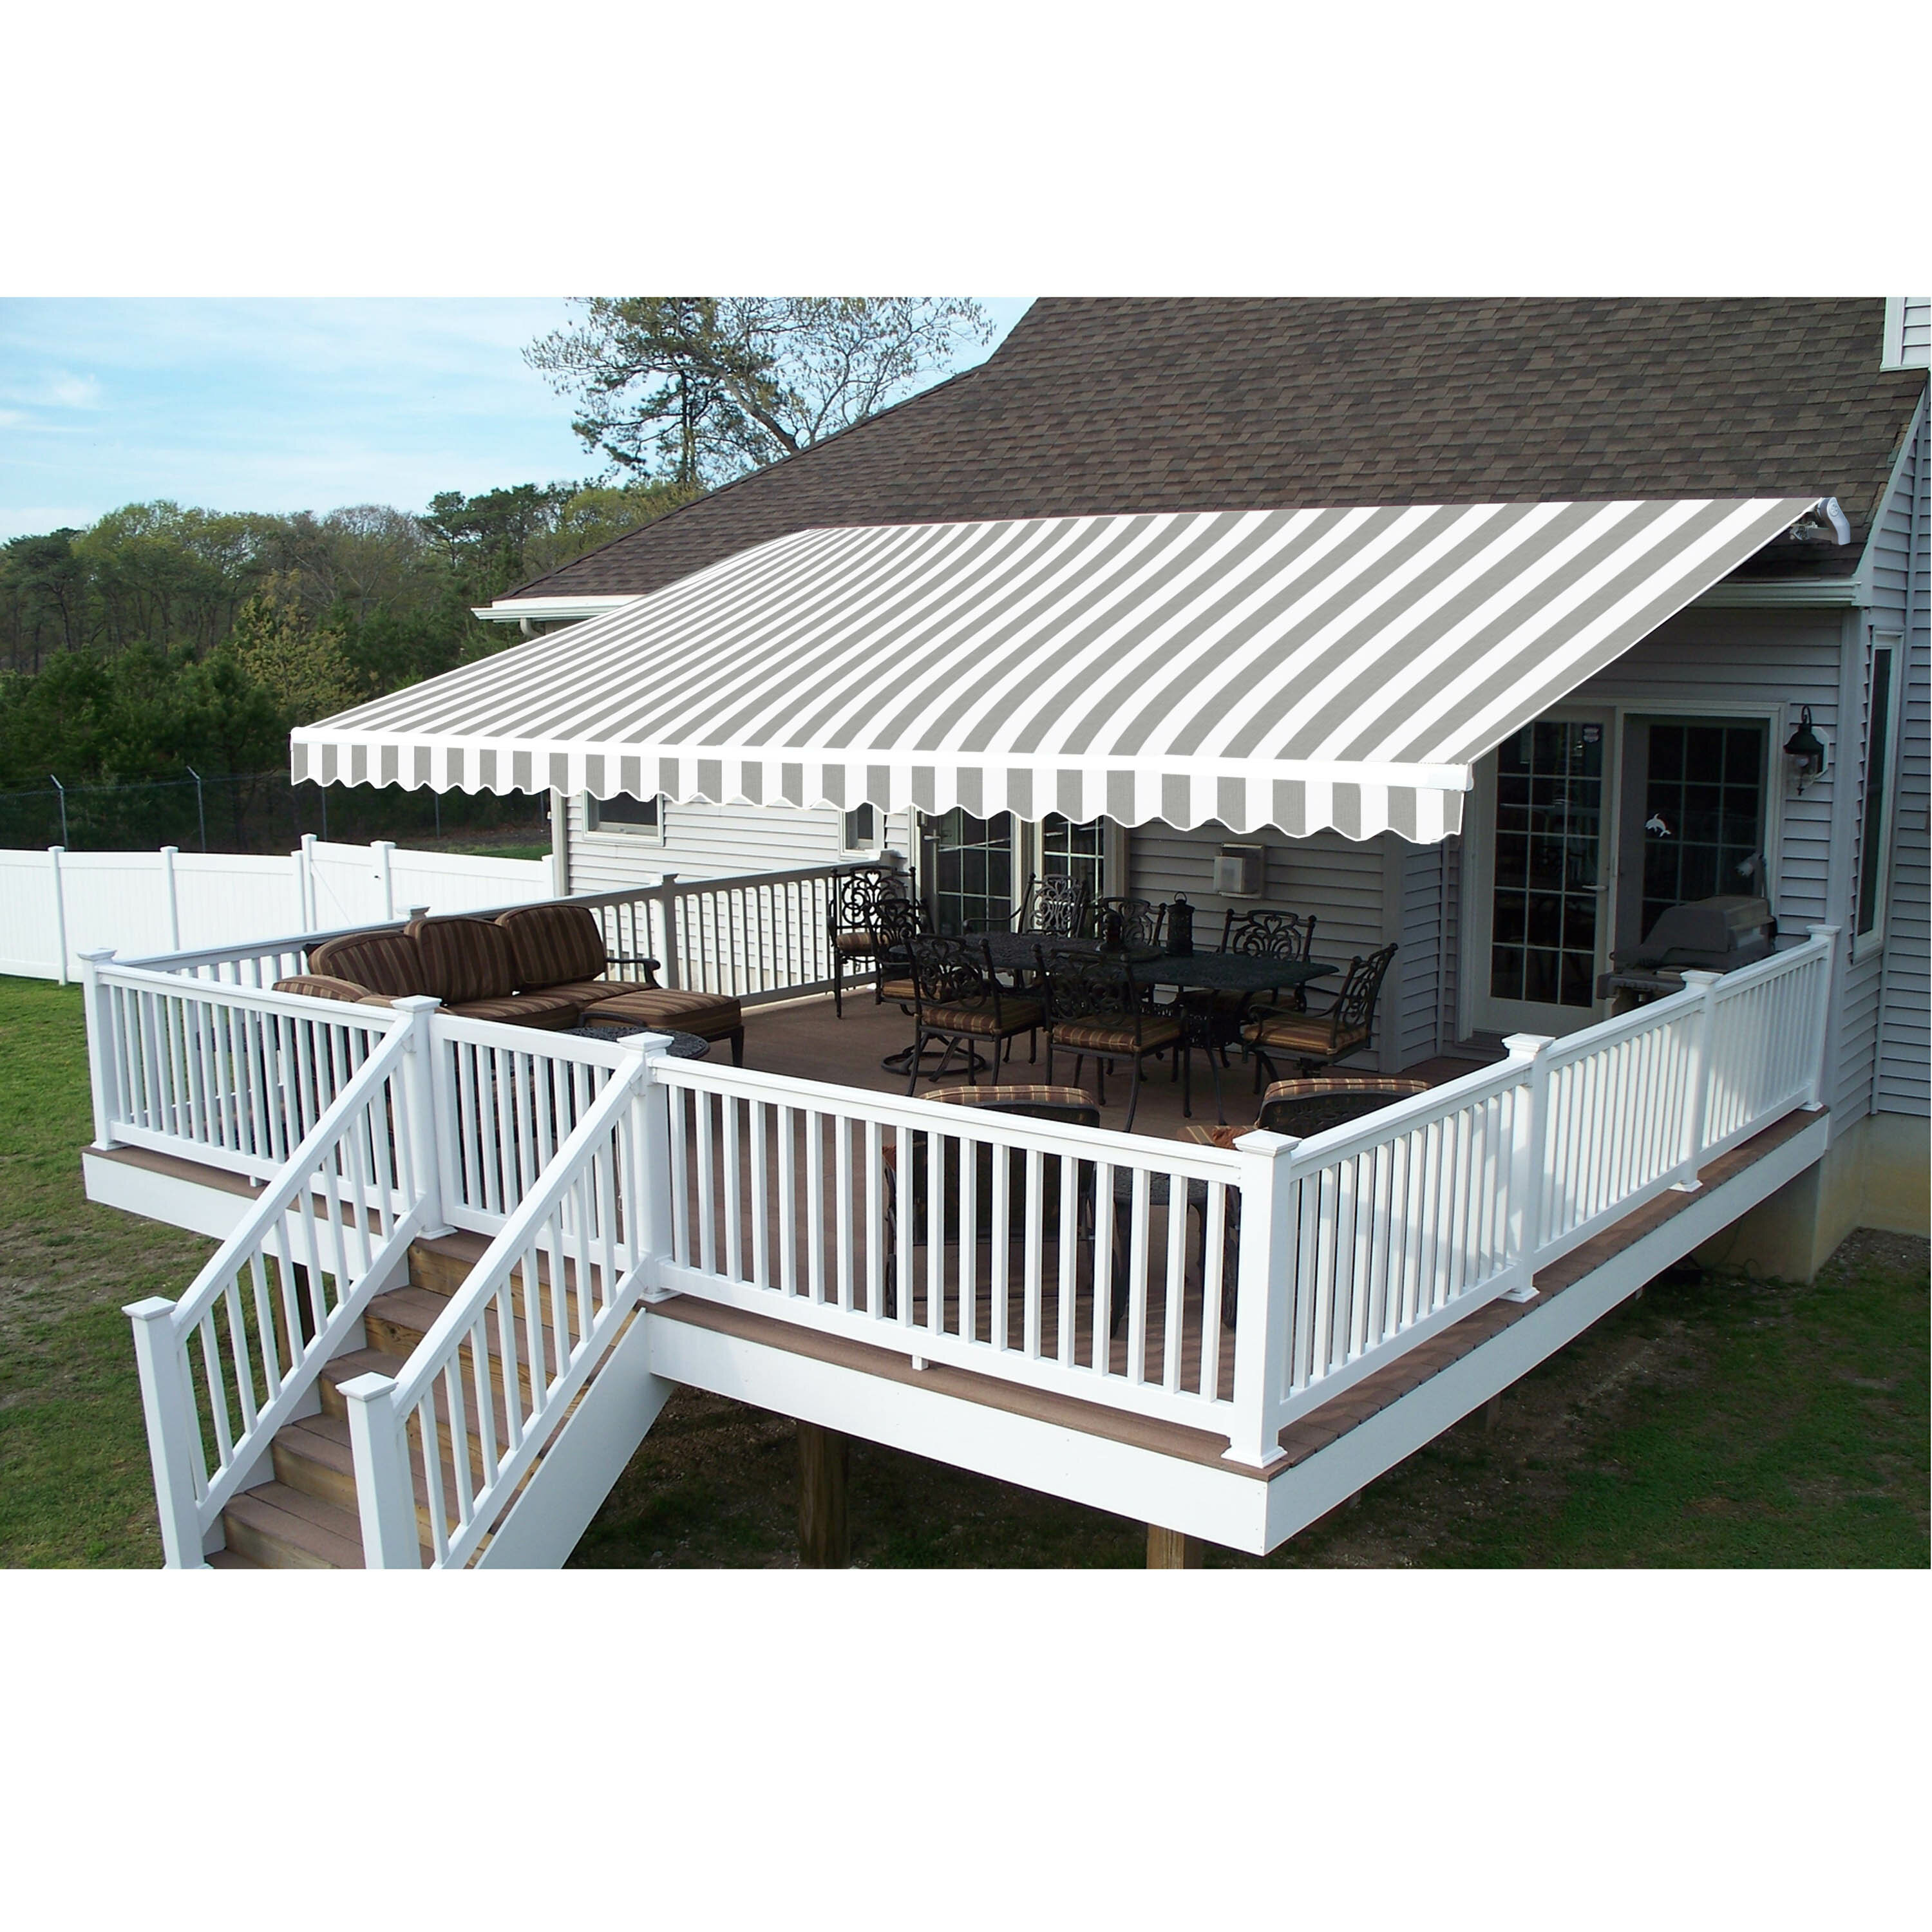 Fabric Retractable Standard Patio Awning